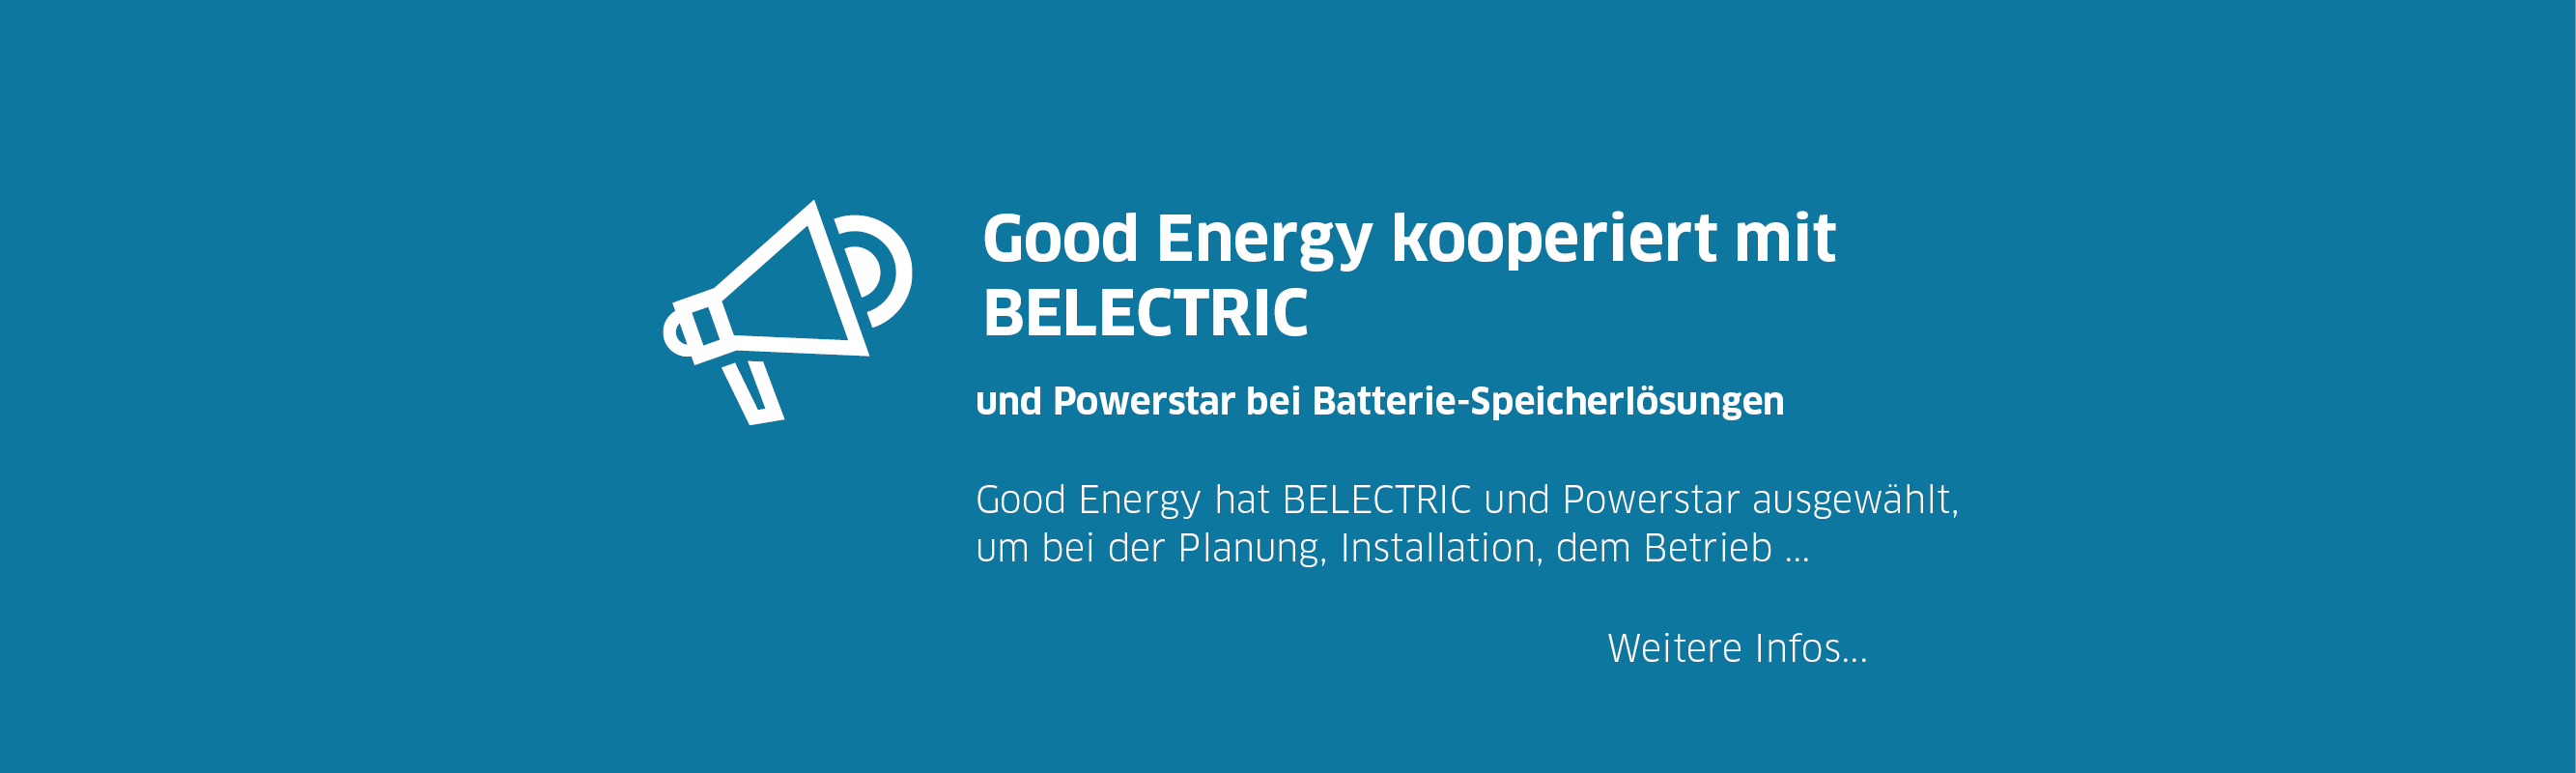 Good Energy kooperiert mit Belectric